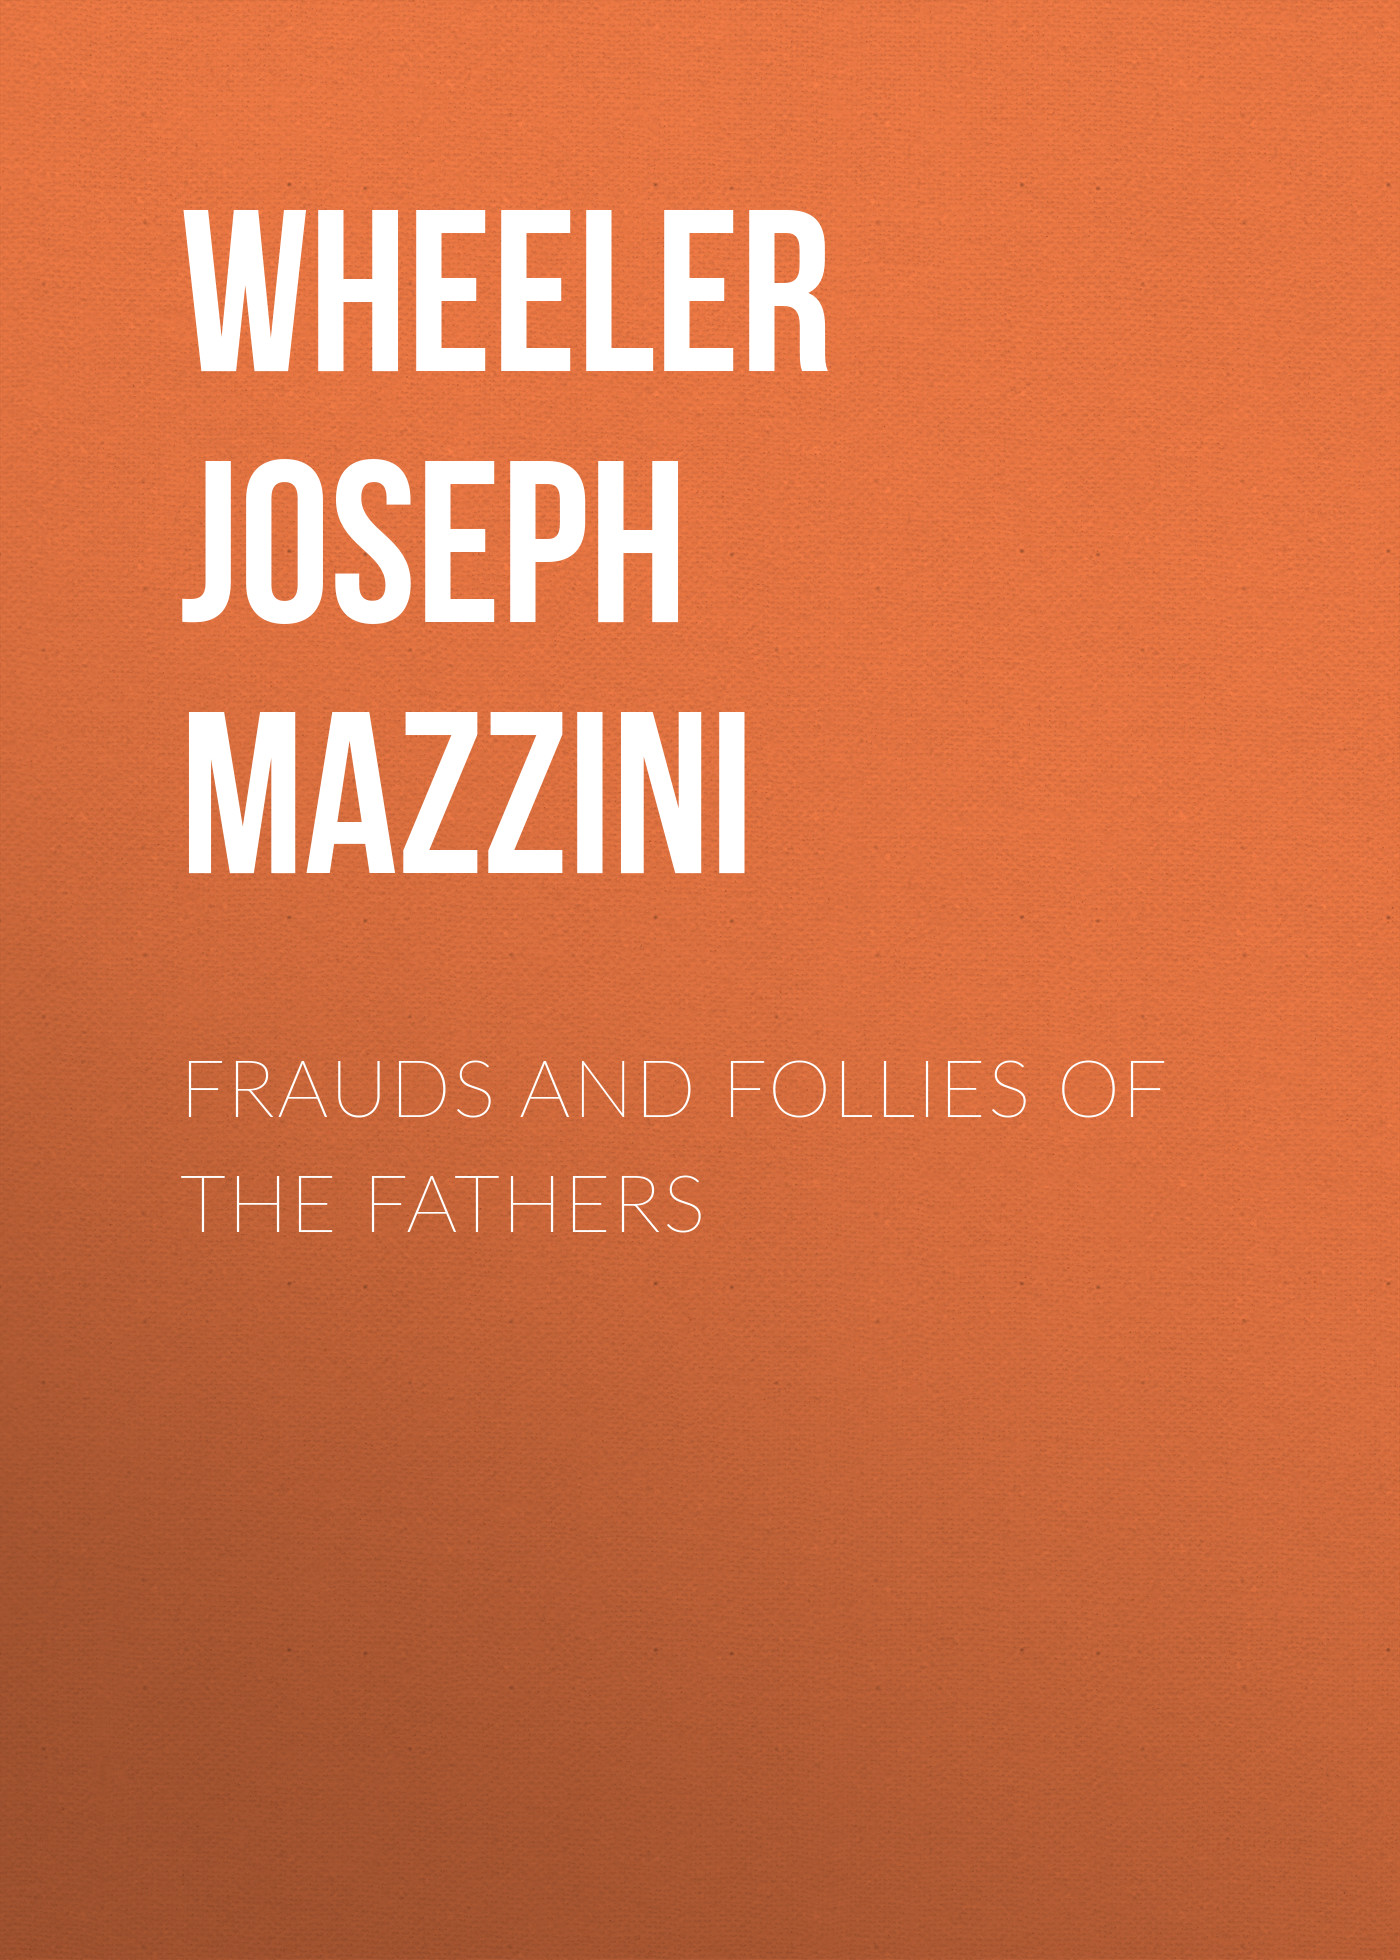 Wheeler Joseph Mazzini Frauds and Follies of the Fathers